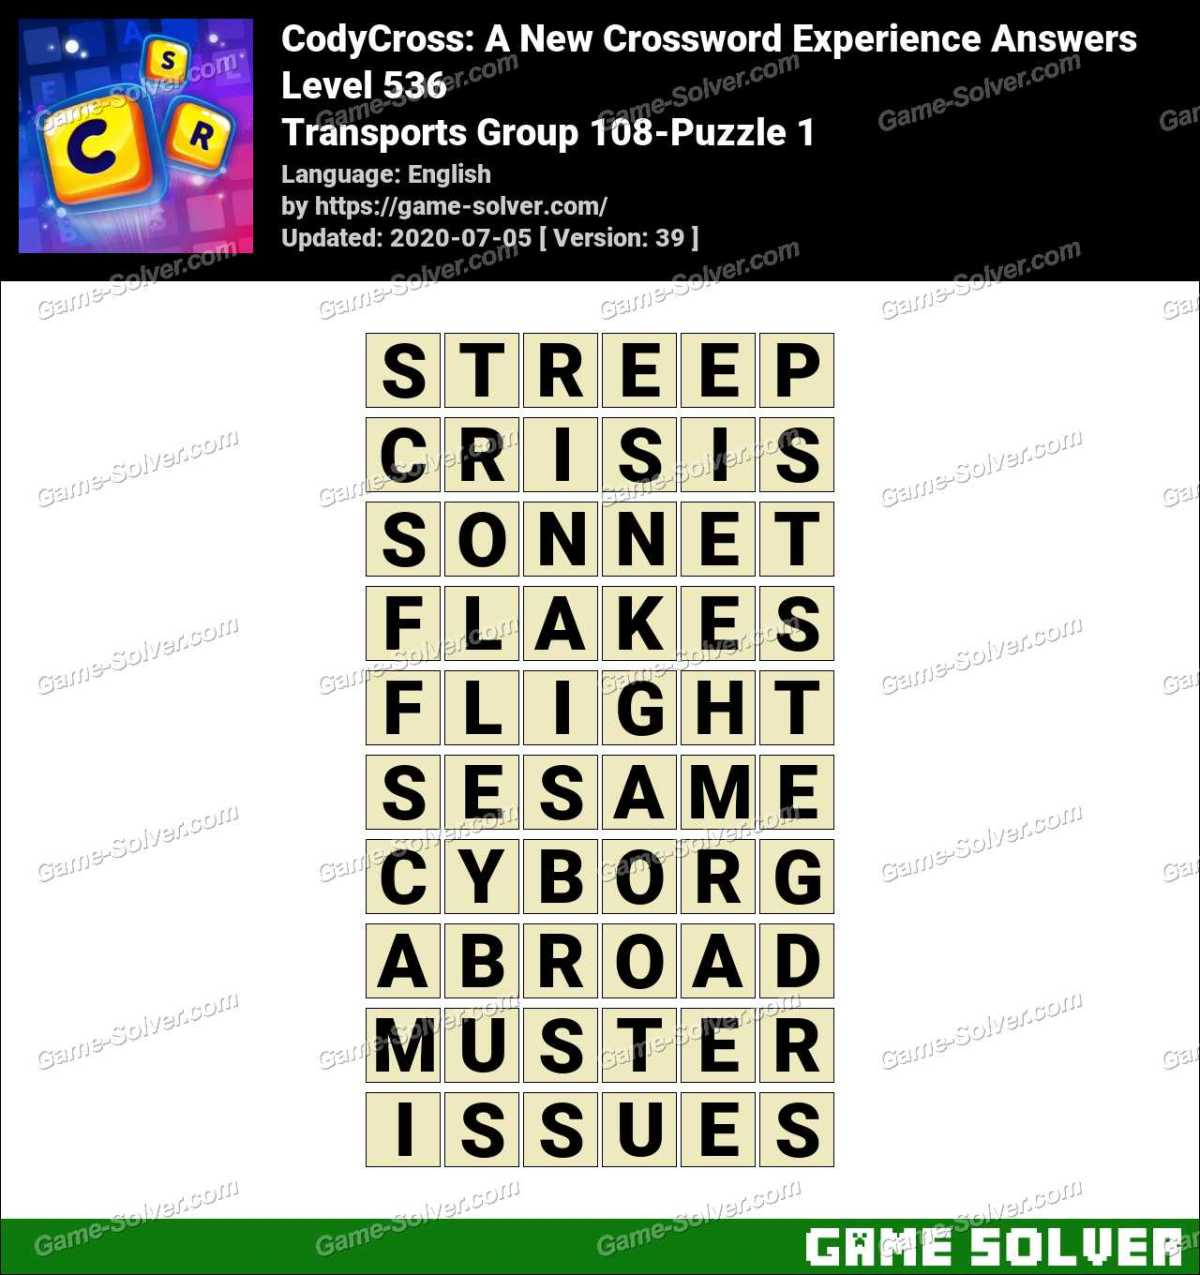 CodyCross Transports Group 108-Puzzle 1 Answers